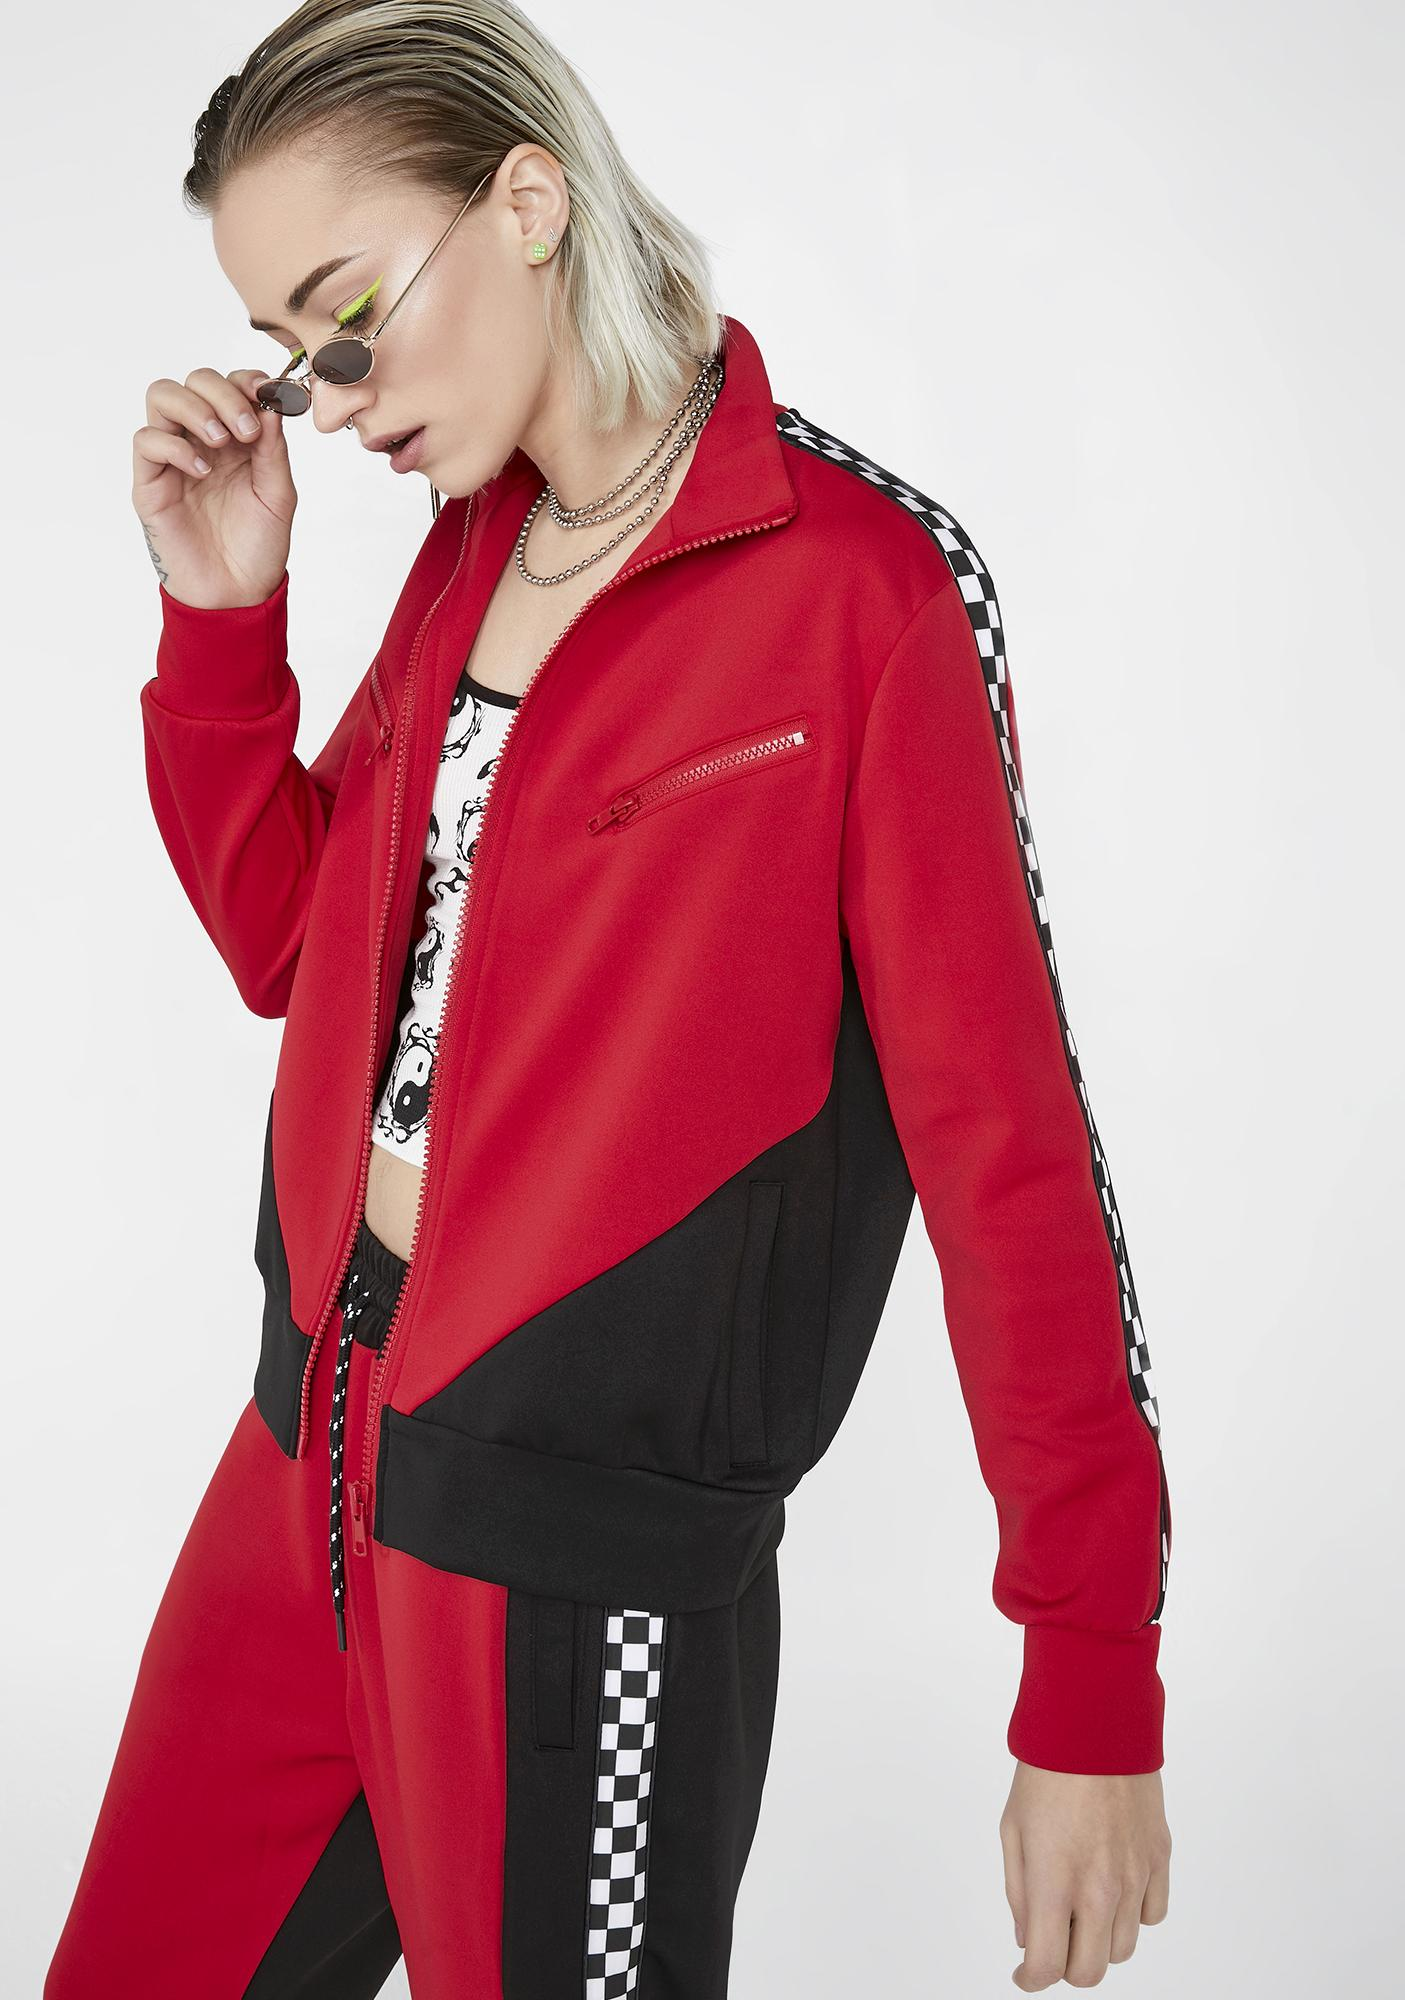 Nana Judy The Liberty Zip Jacket